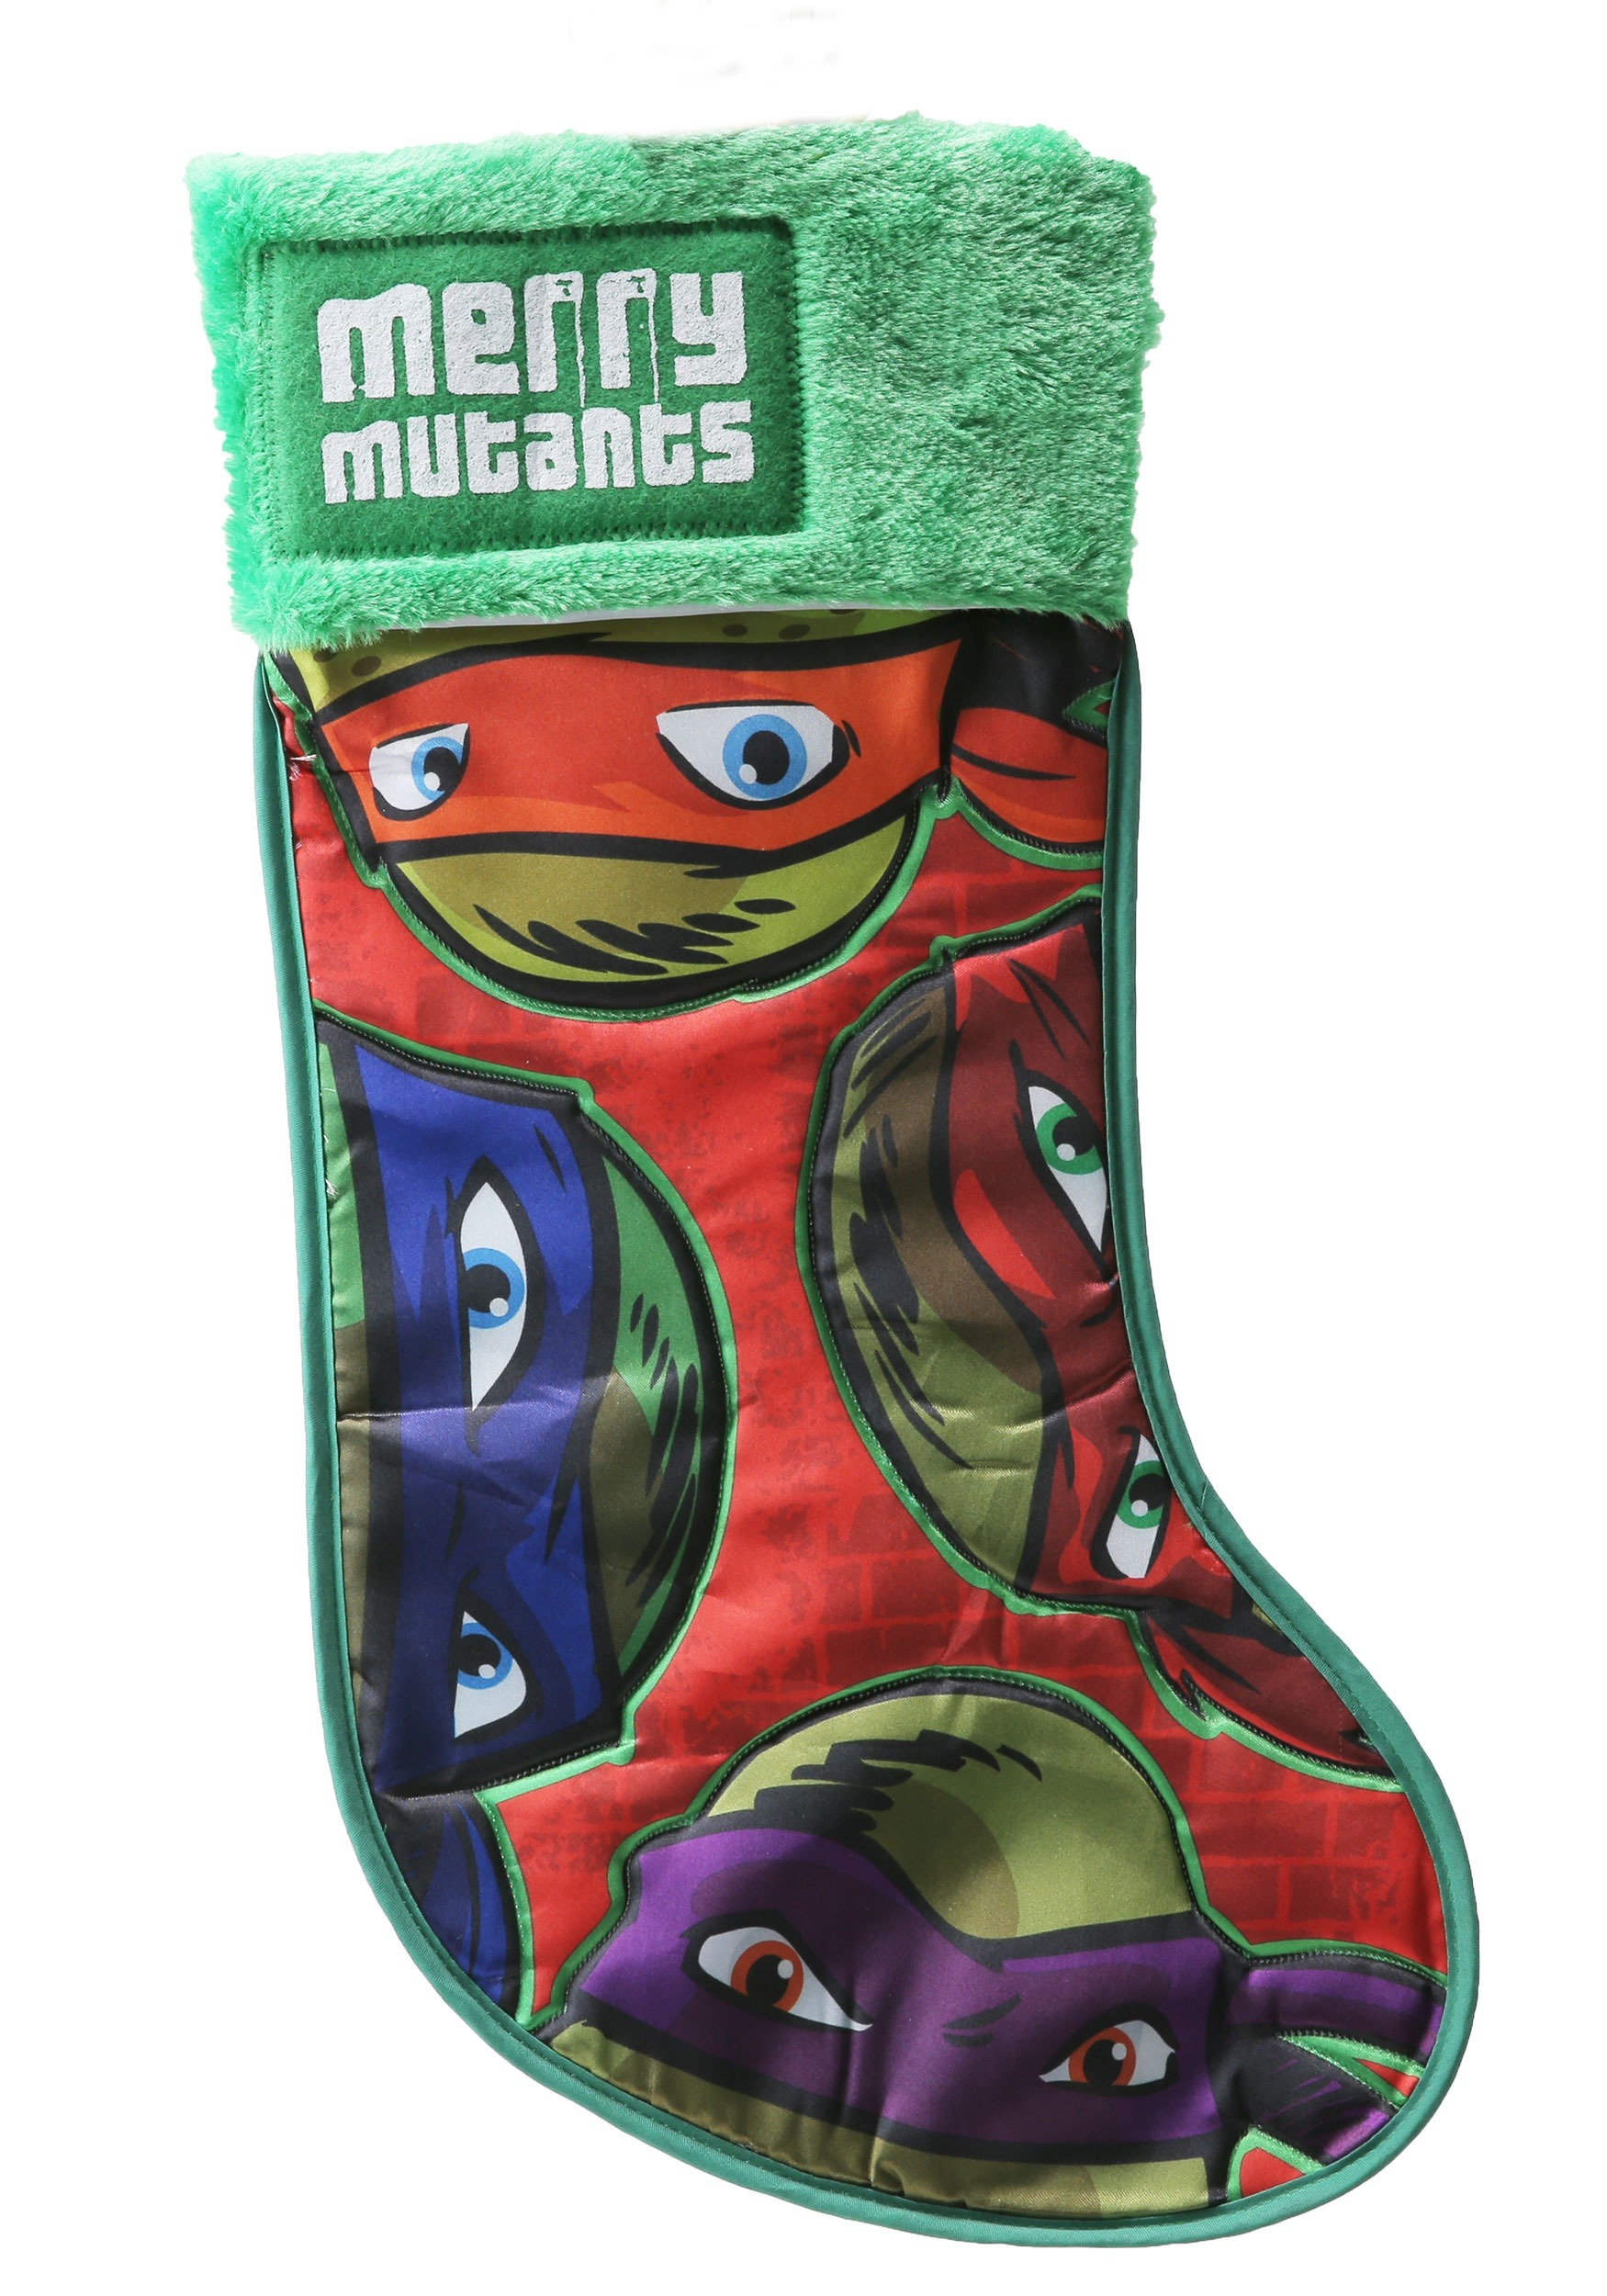 Teenage Mutant Ninja Turtles Gifts